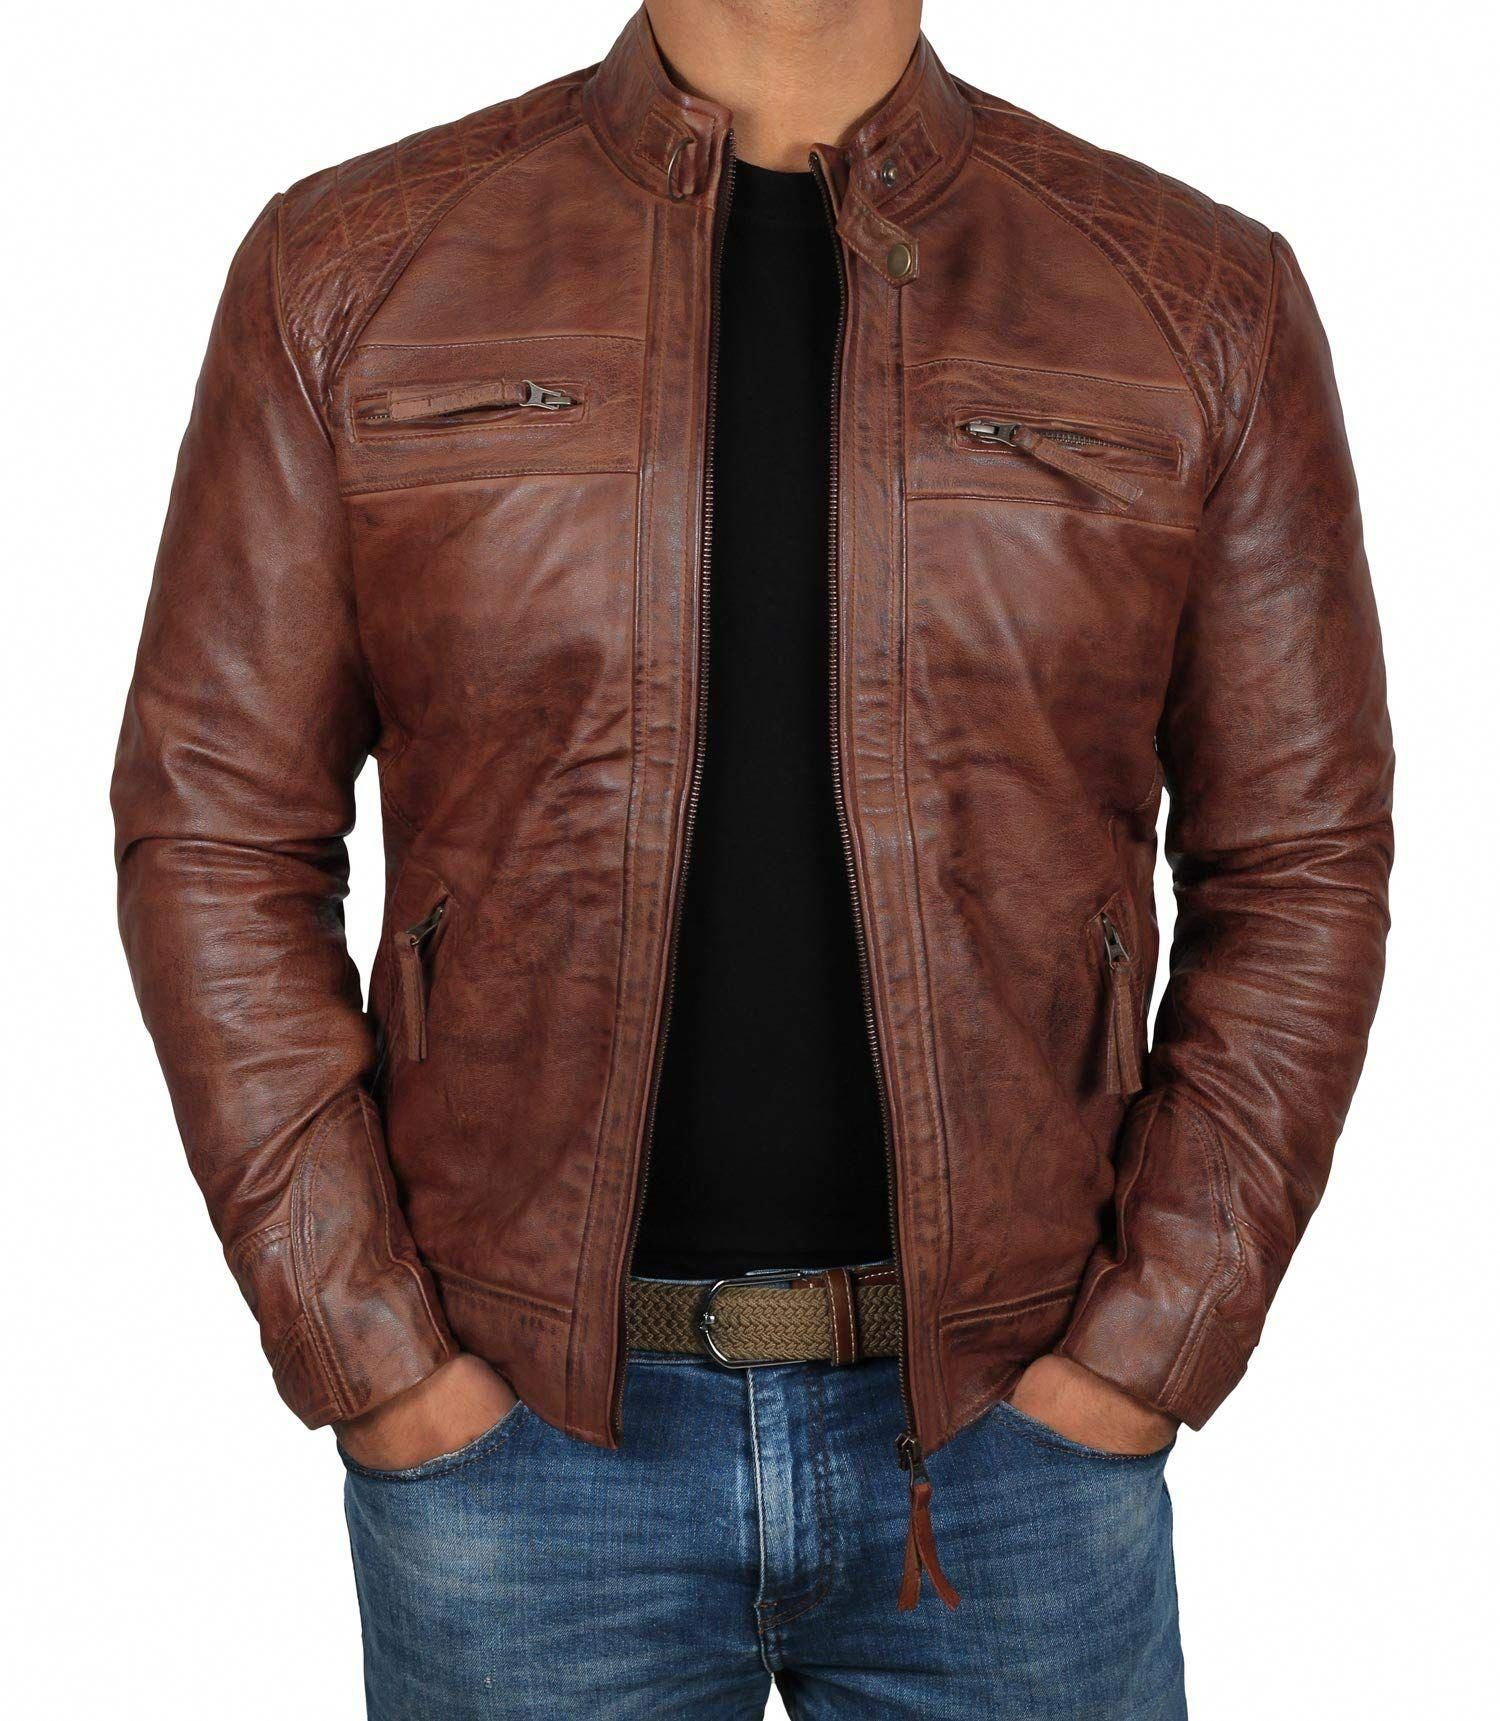 LeatherJacketsForMenorange Leather jacket men, Brown